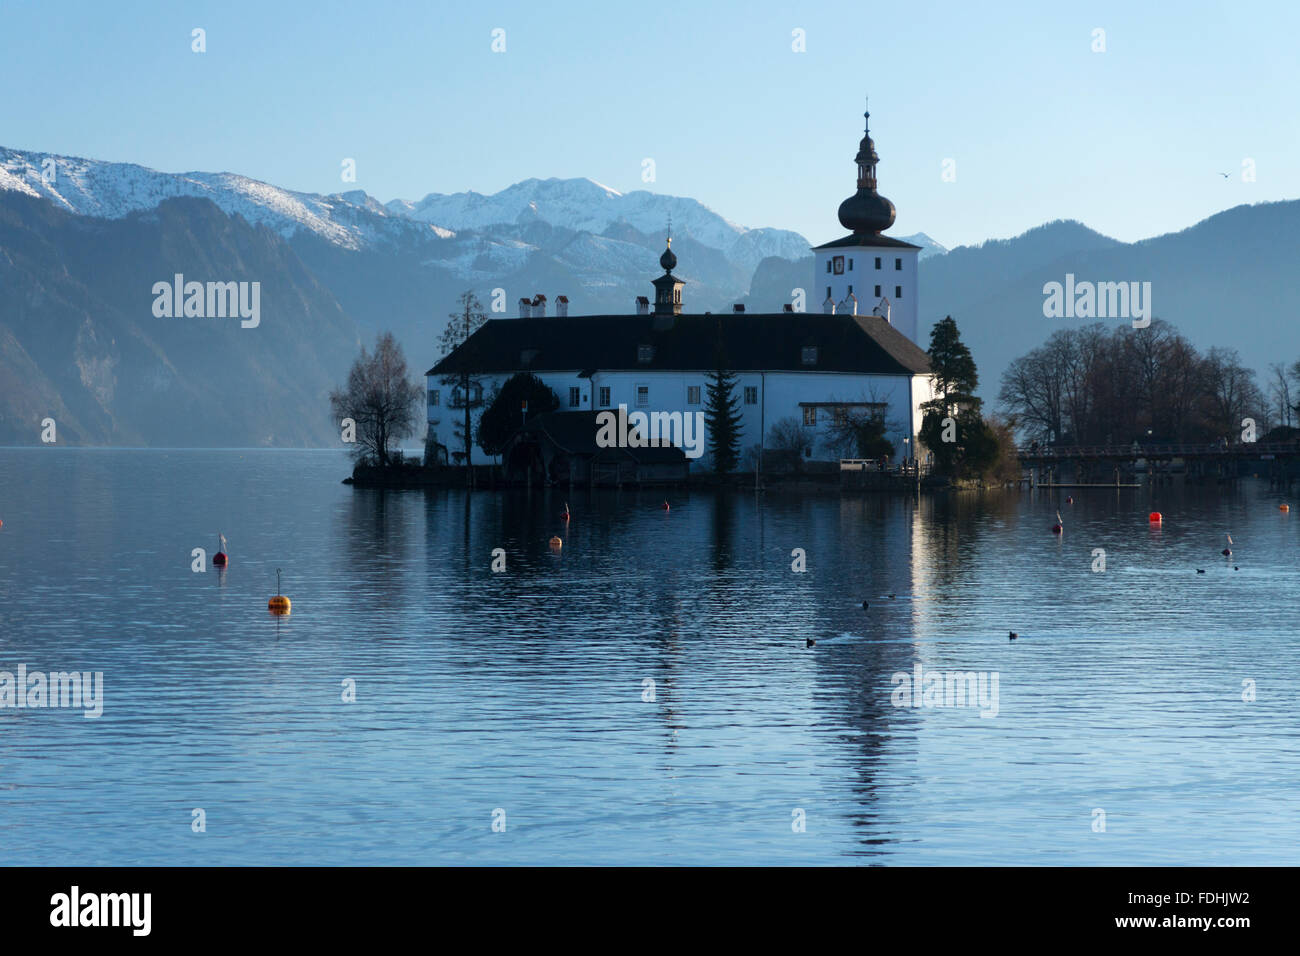 Schloss Ort in Gmunden, Austria, with snow covered mountains in the background - Stock Image